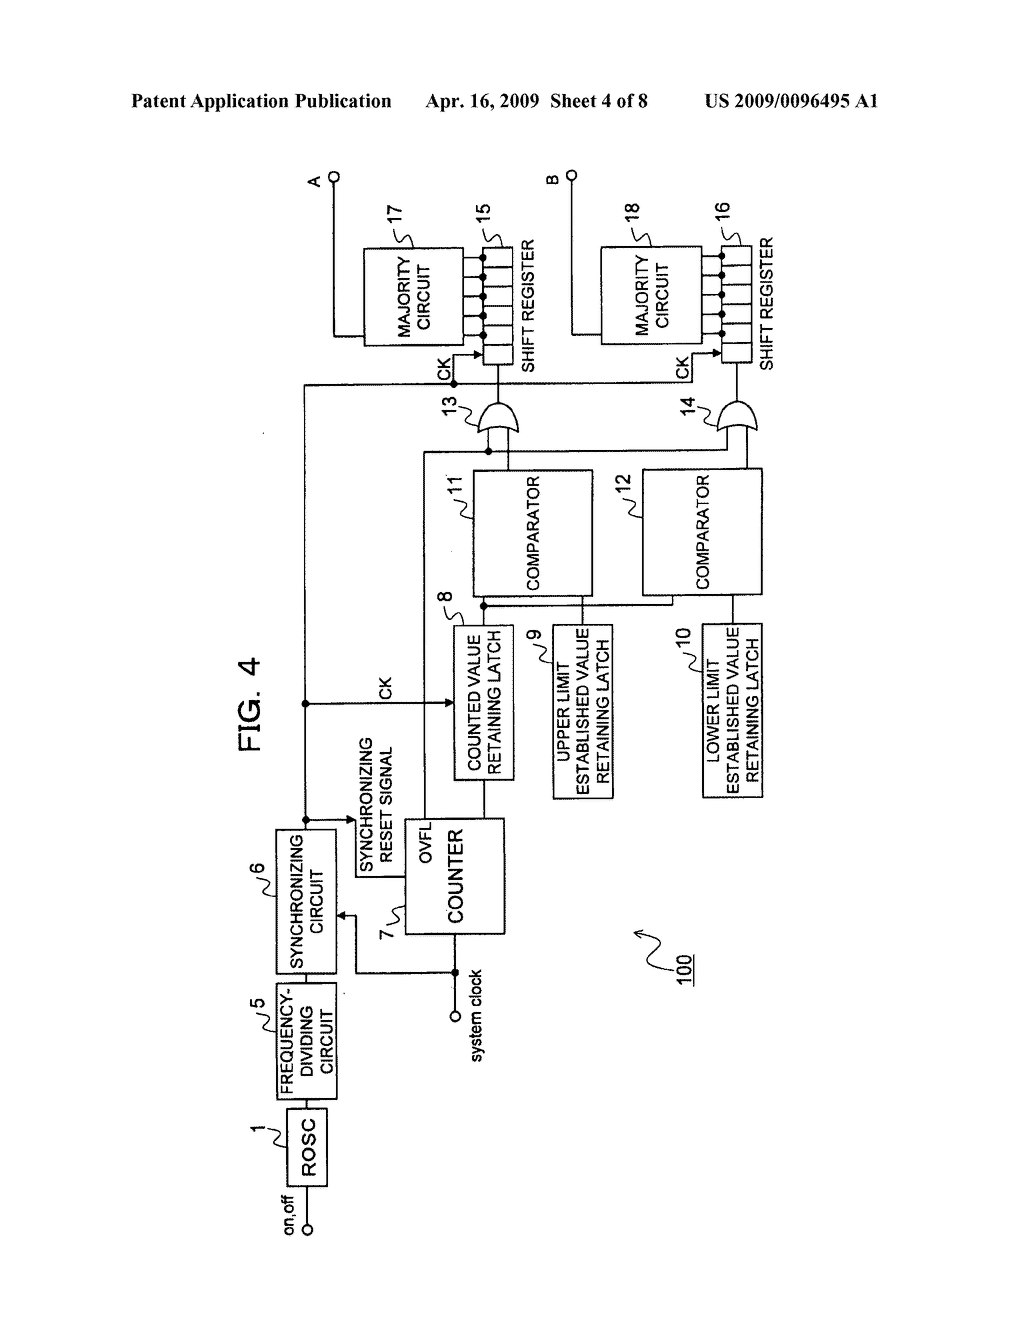 Ring Oscillator For Temperature Sensor Circuit Diagram And Semiconductor Device Having The Same Schematic Image 05